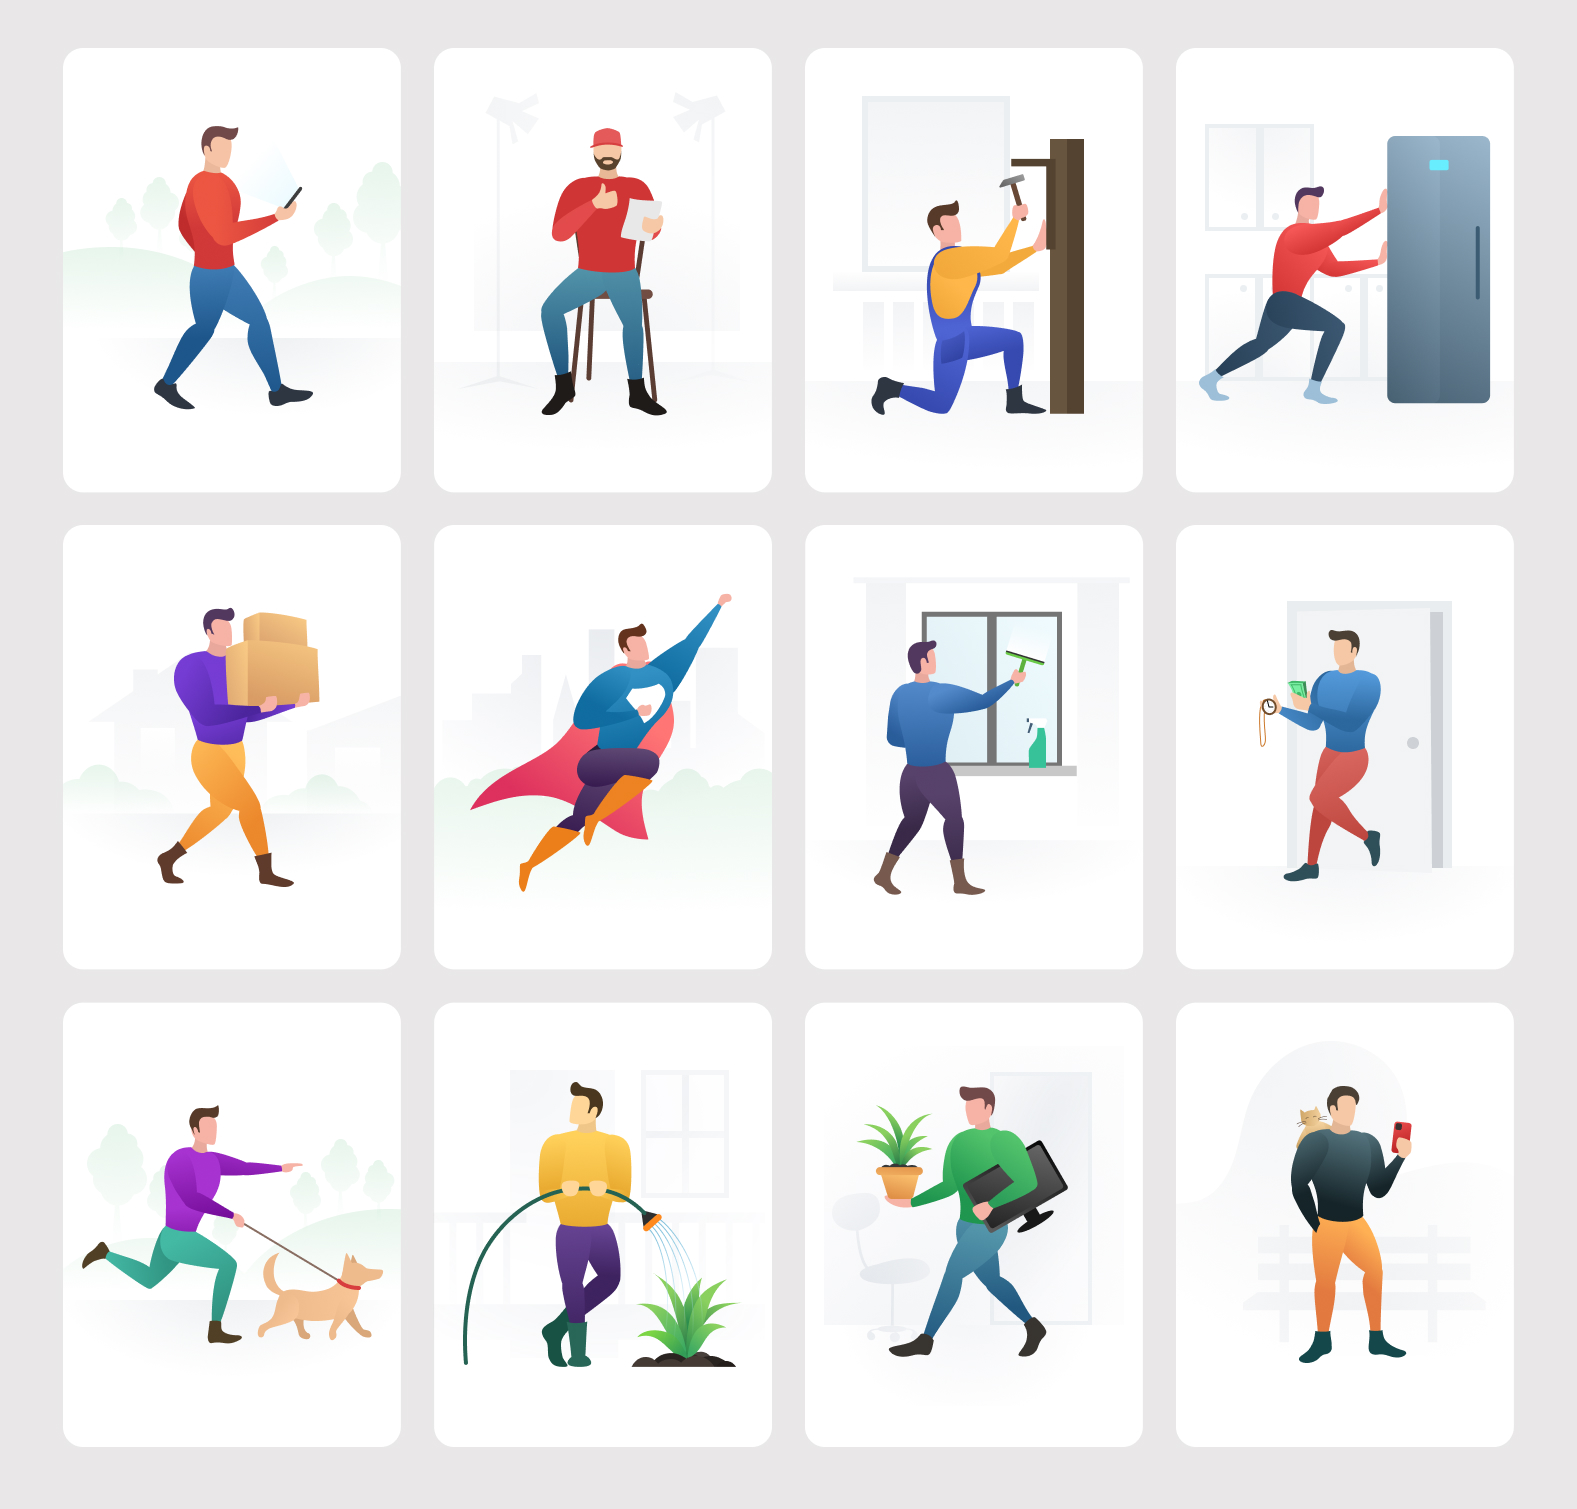 Your Home Helper - Free Illustrations Pack - Need to help with your home daily routine? You're welcome. Just download and use or edit our new illustrations pack of personal home helpers.